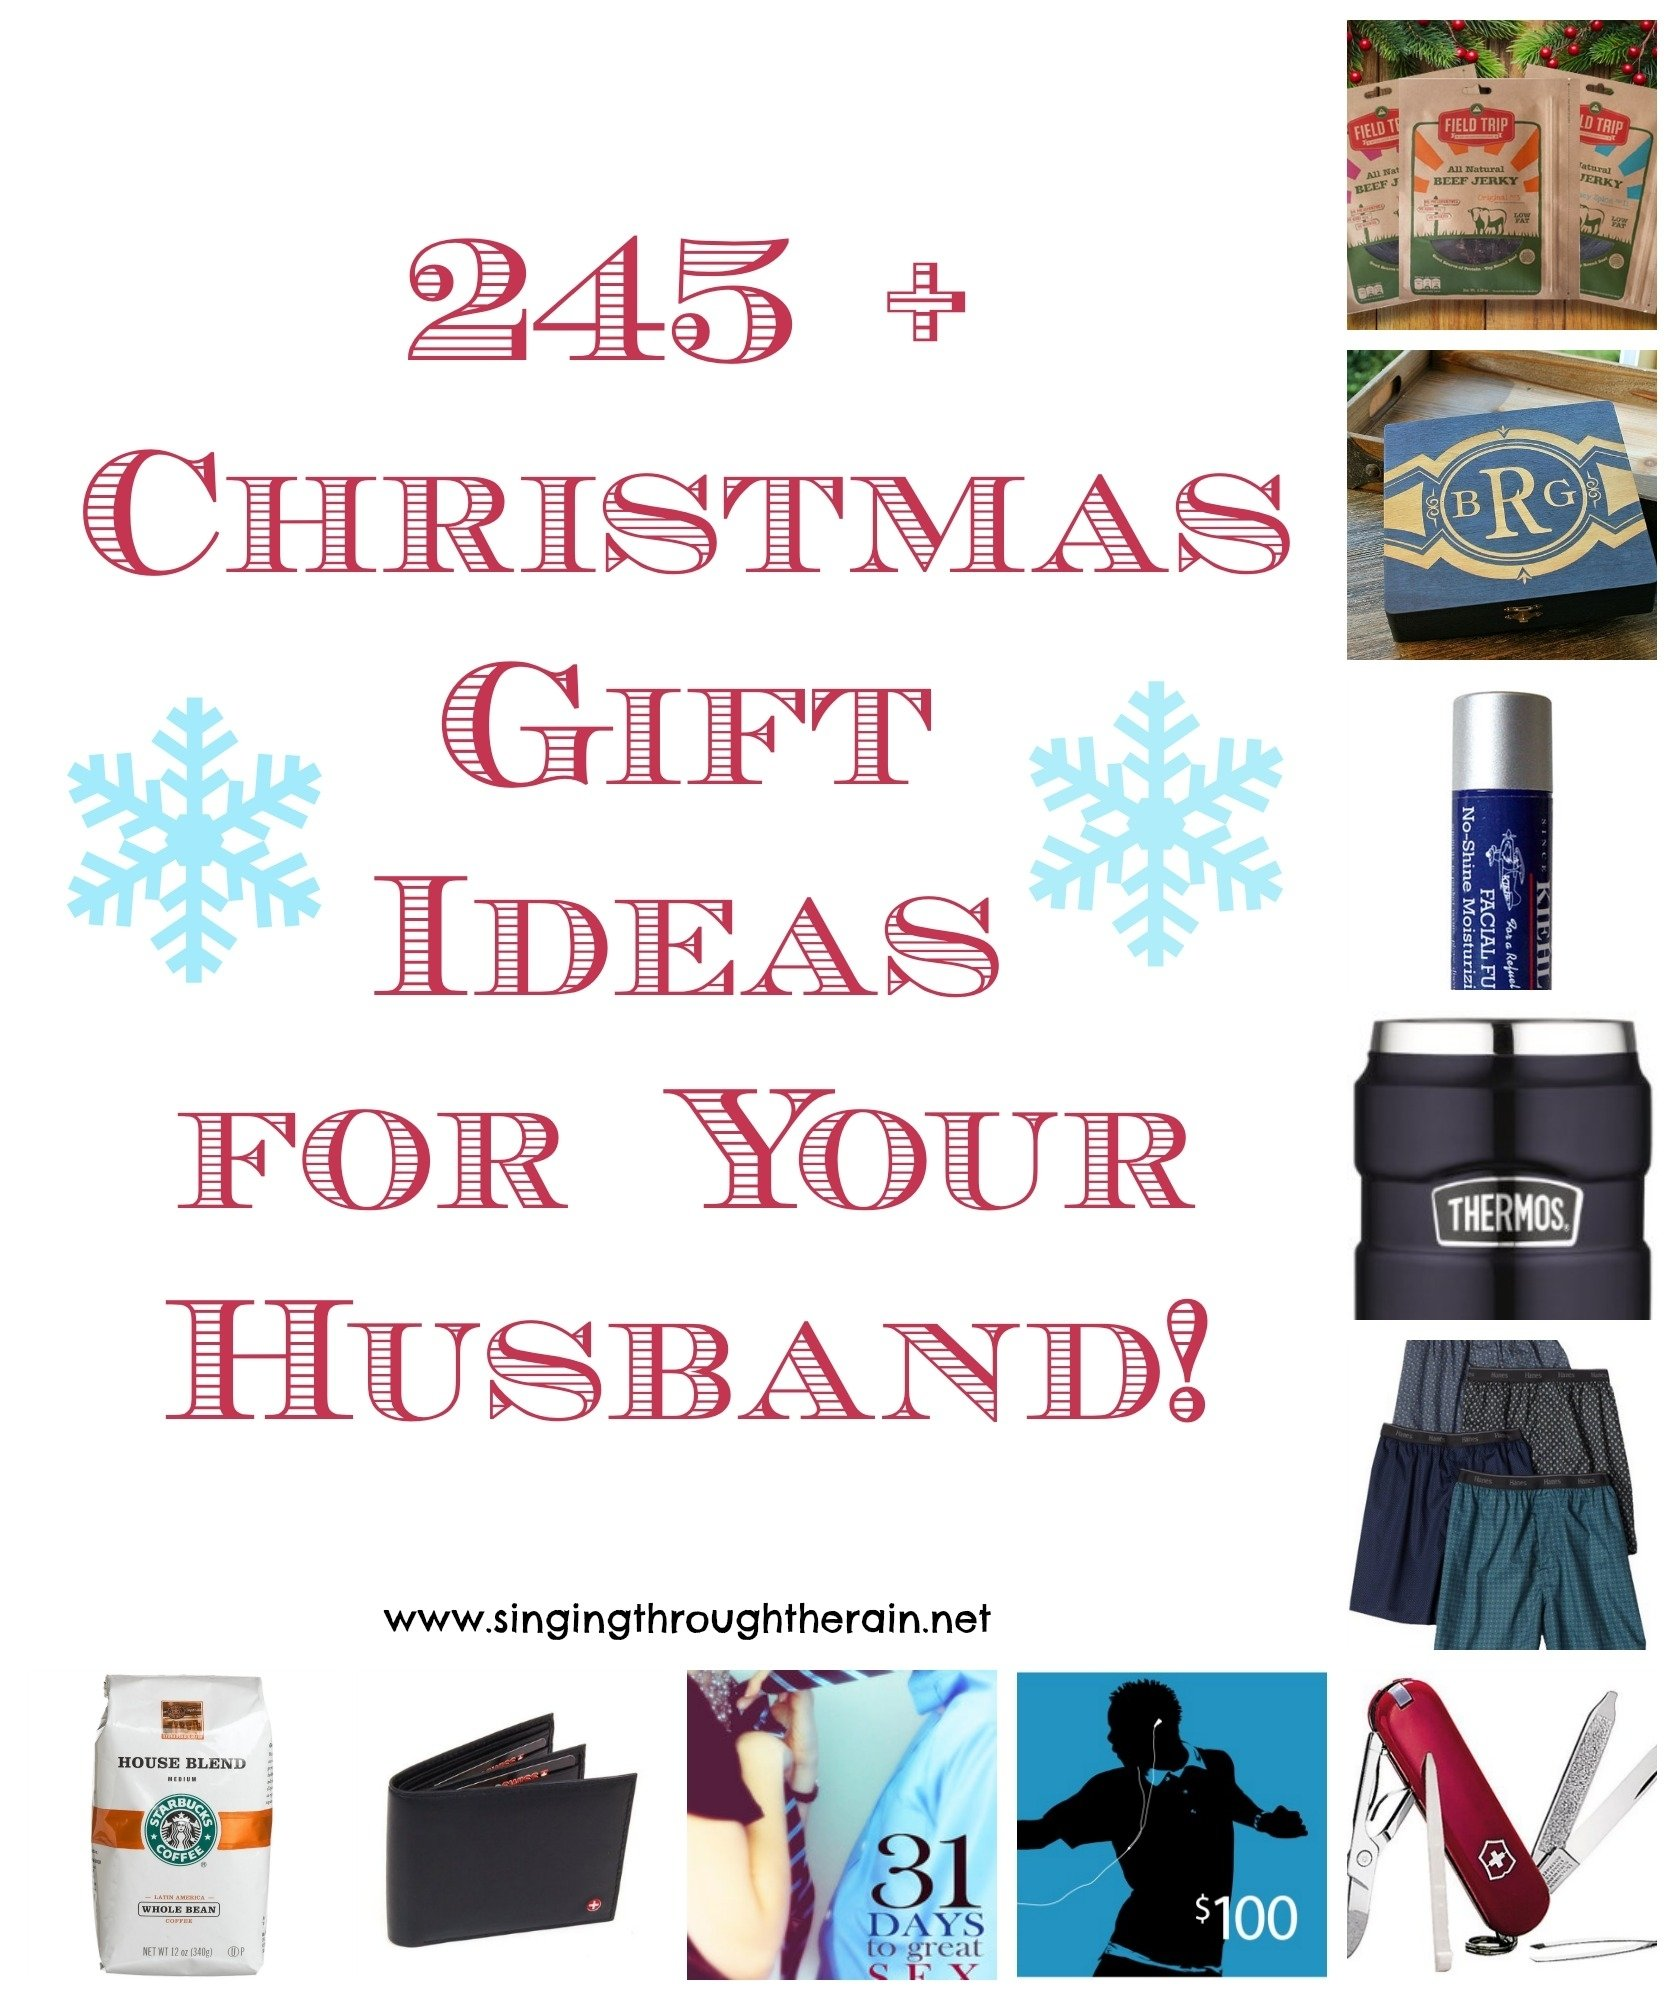 10 Unique Christmas Gift Ideas For My Husband 245 christmas gift ideas for your husband singing through the rain 9 2020